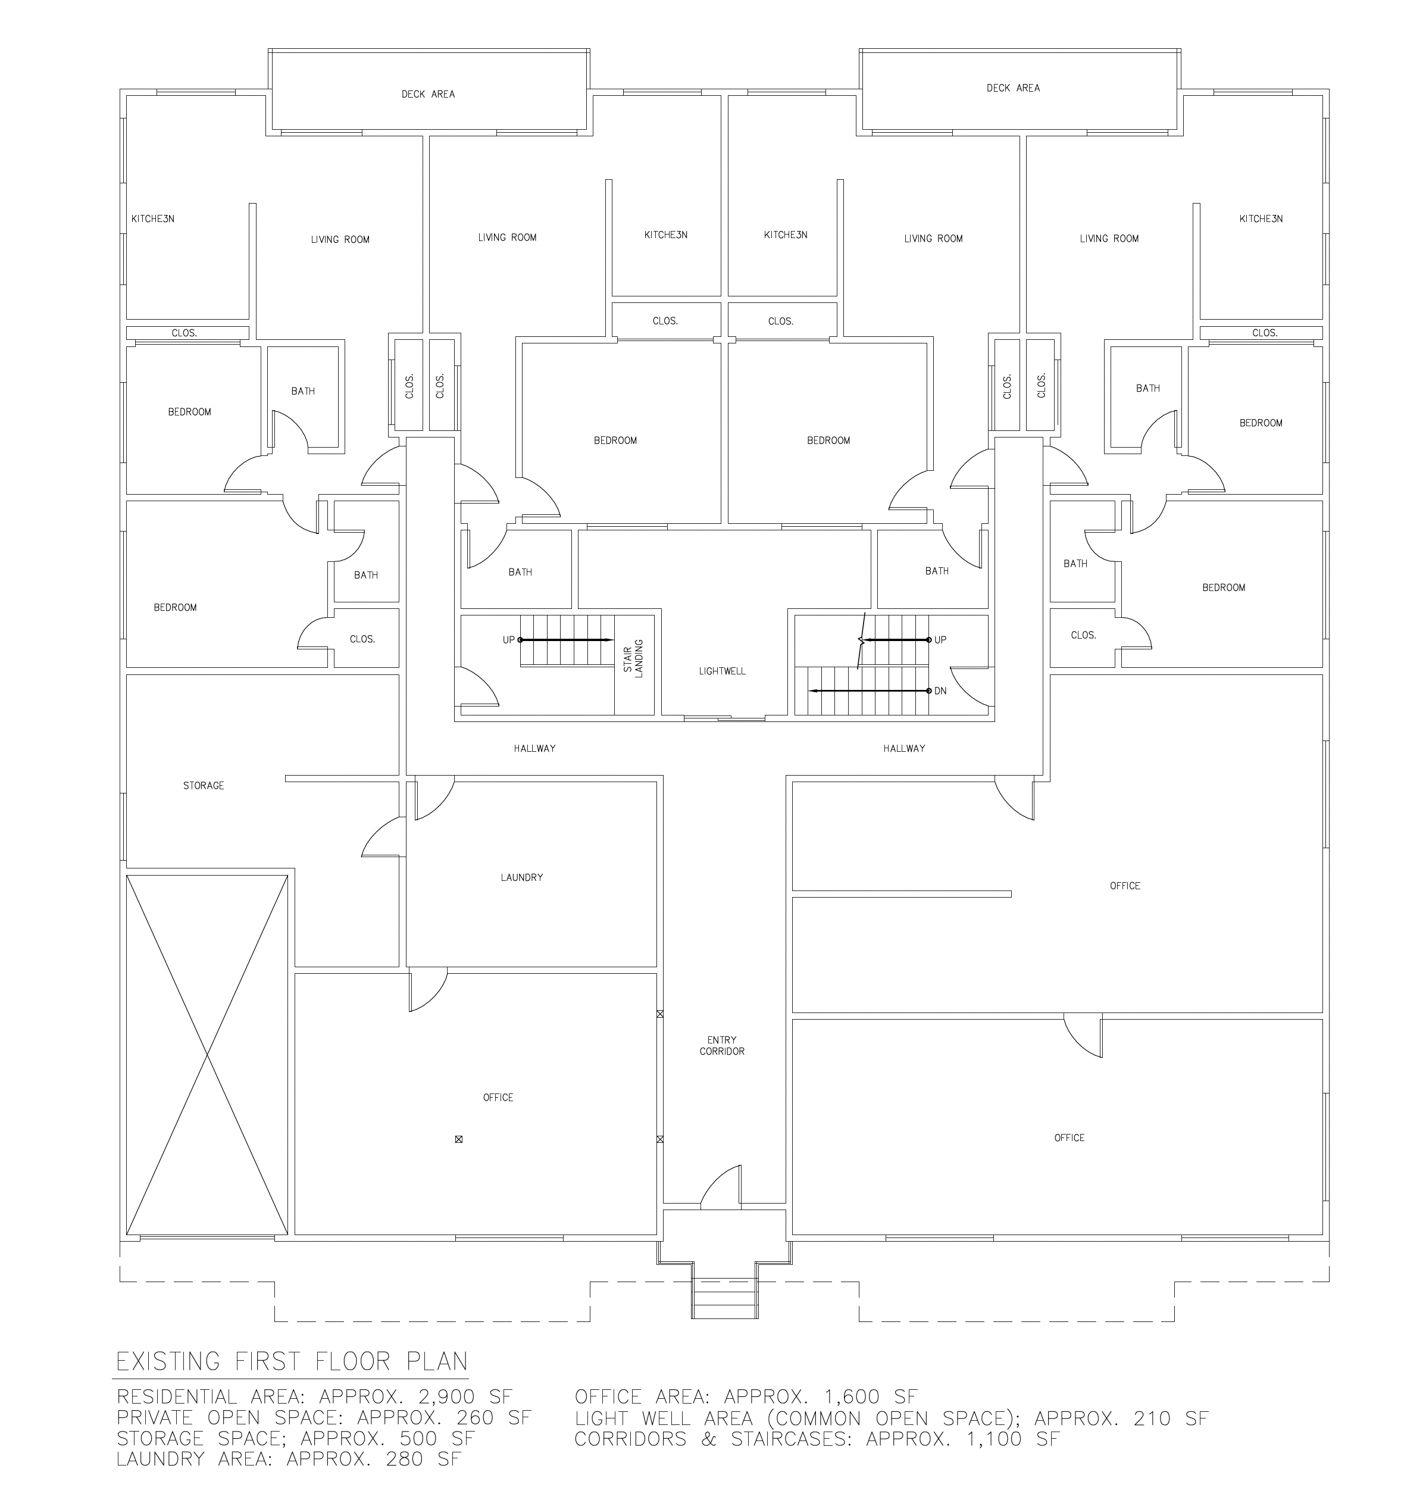 550 27th Street existing first-floor, drawing by ZoneDesign Development